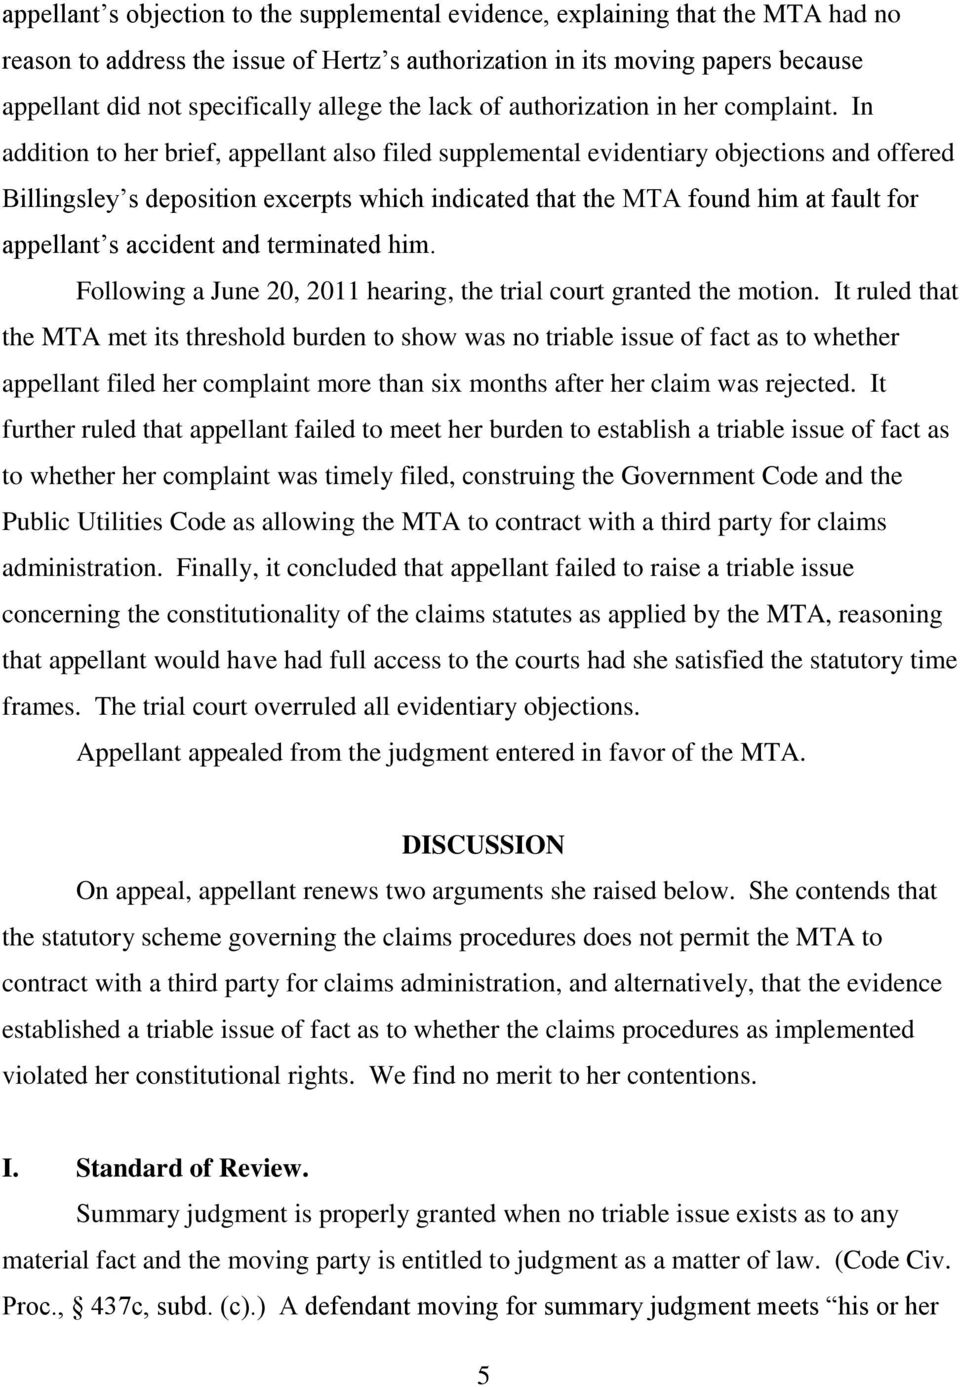 In addition to her brief, appellant also filed supplemental evidentiary objections and offered Billingsley s deposition excerpts which indicated that the MTA found him at fault for appellant s